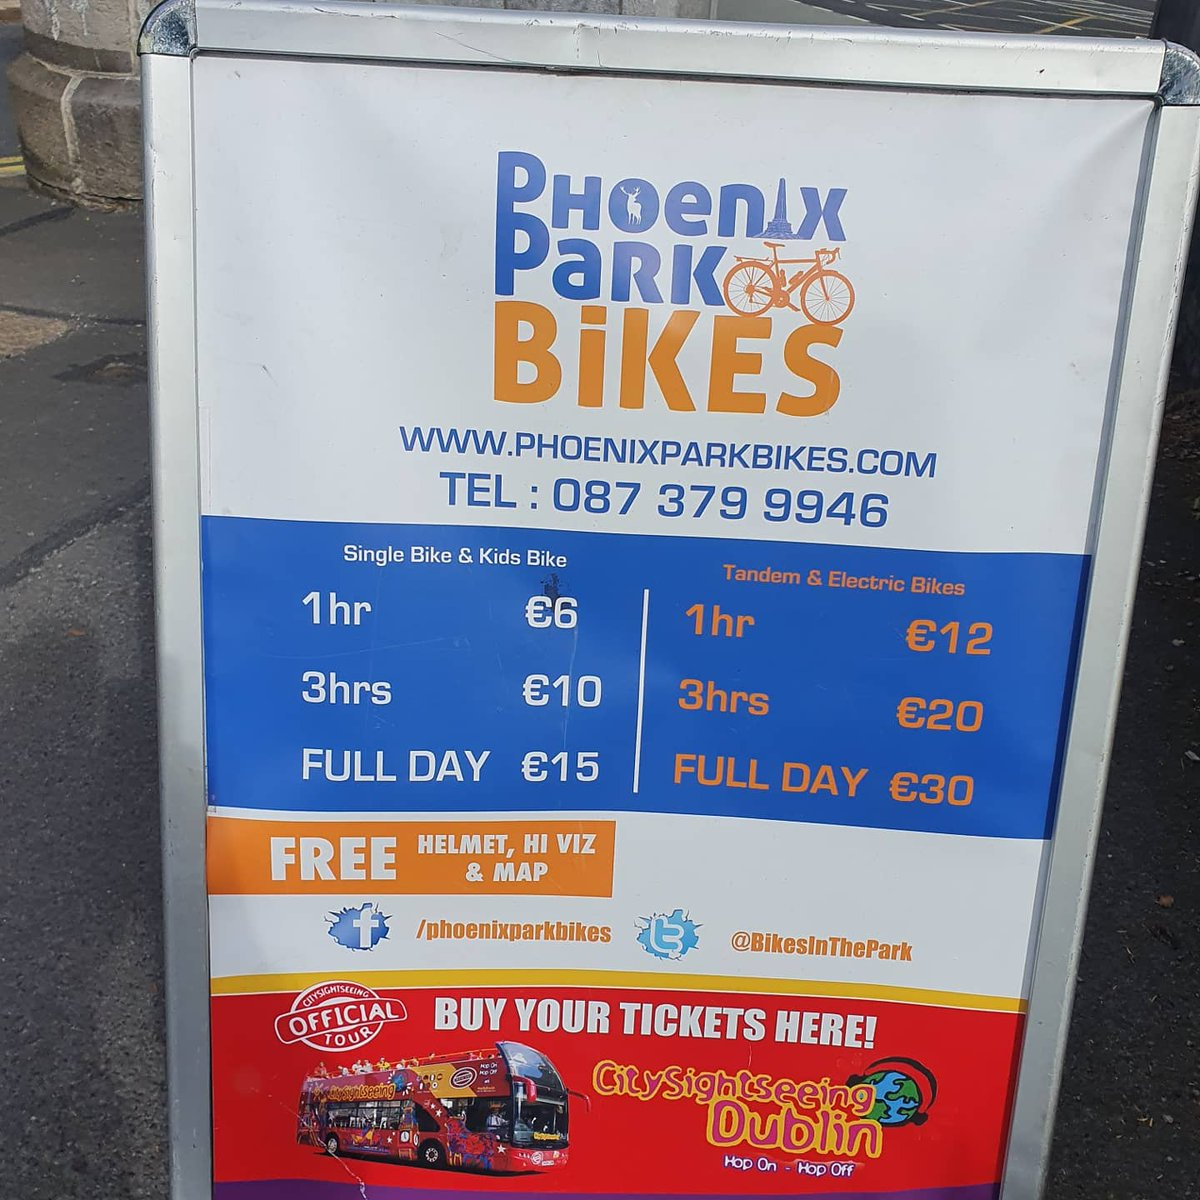 test Twitter Media - We are open for business 10am to 6pm 7 days a week #bikehire #dublin #bikes #phoenixpark #covid19 https://t.co/2X1jhWxg7R